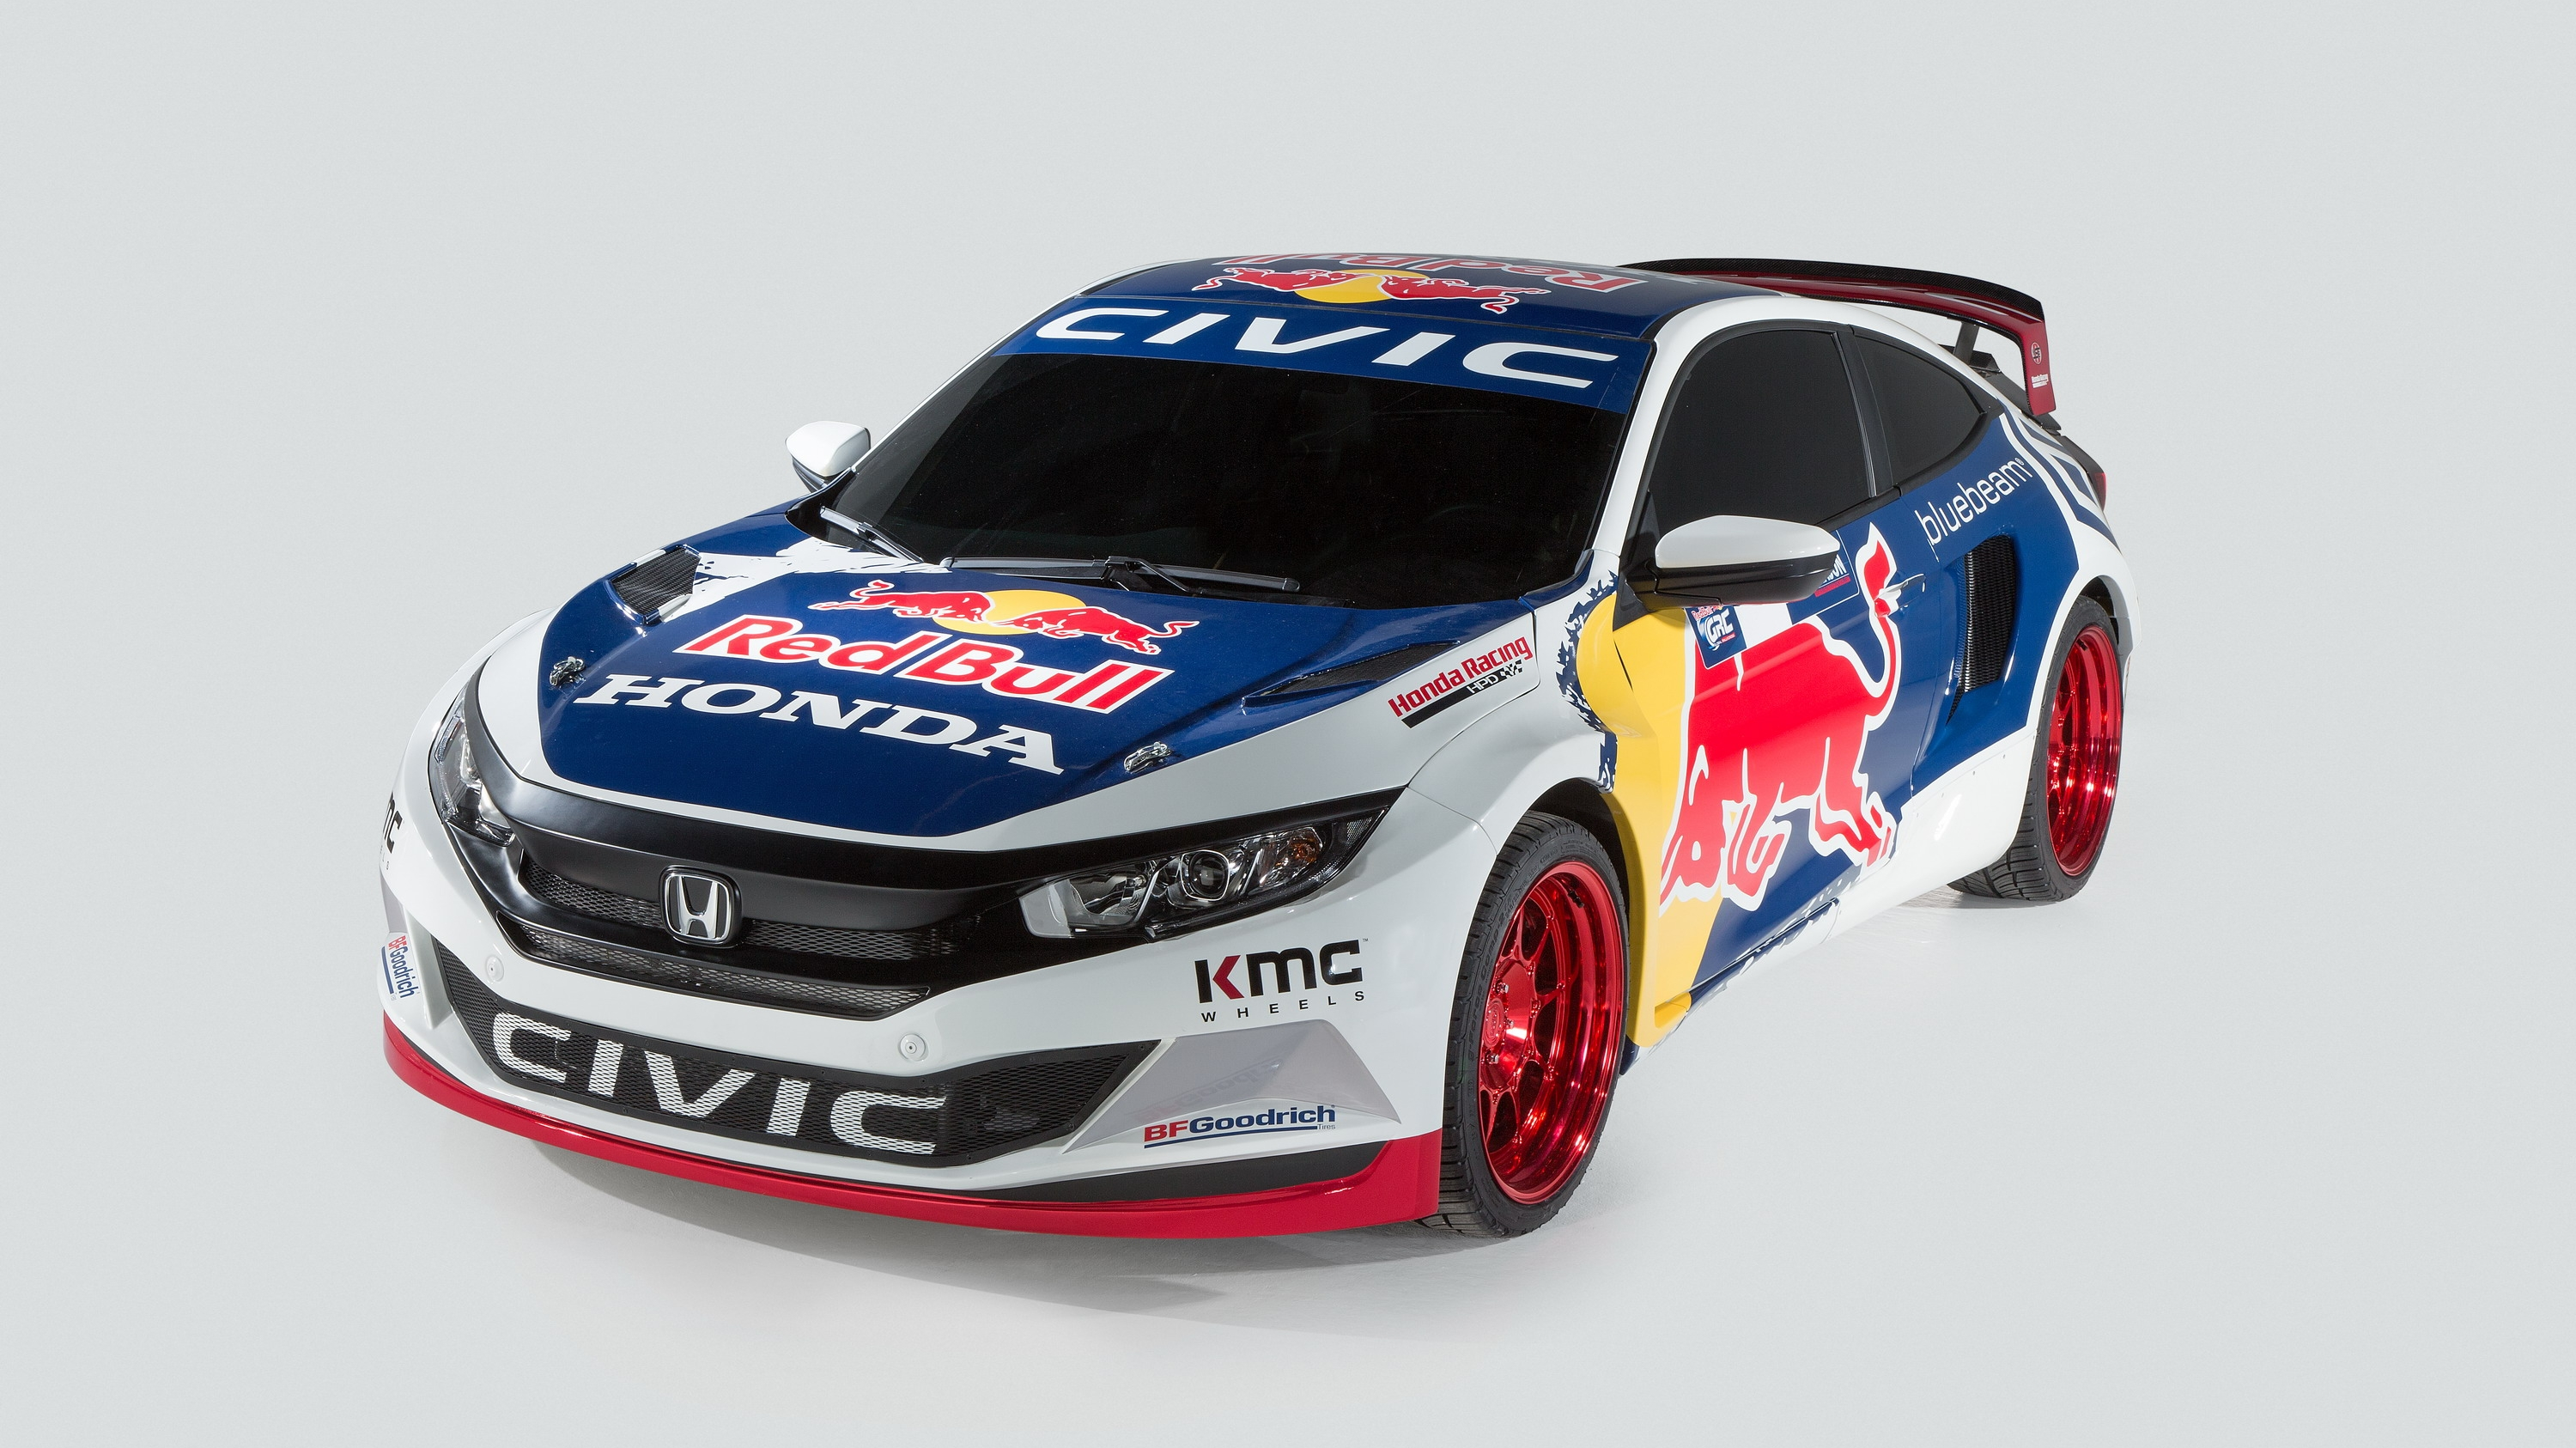 2016 Honda Civic Coupe GRC Competitive Race Car | Top Speed